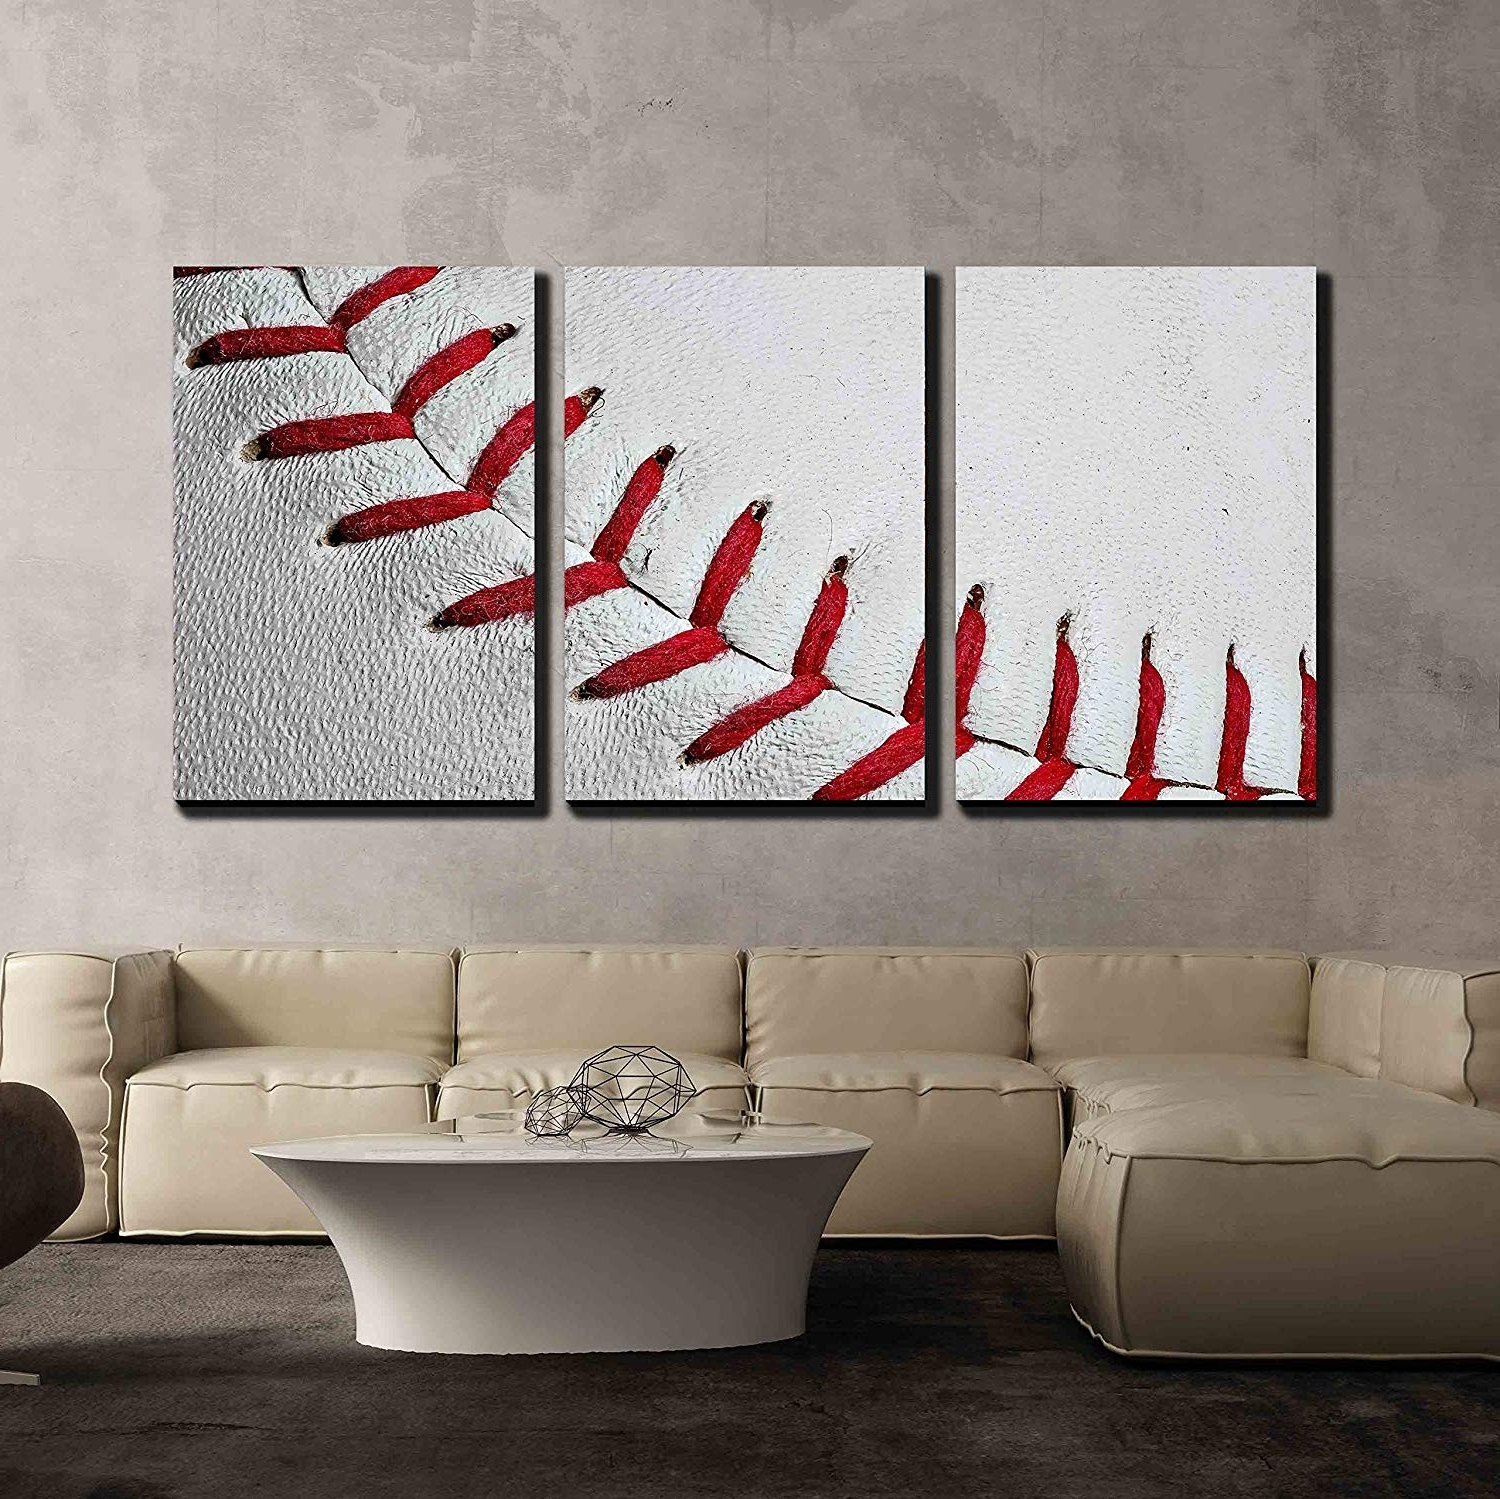 Amazon: Wall26 – 3 Piece Canvas Wall Art – Baseball Seams Inside Favorite Baseball Wall Art (View 3 of 15)